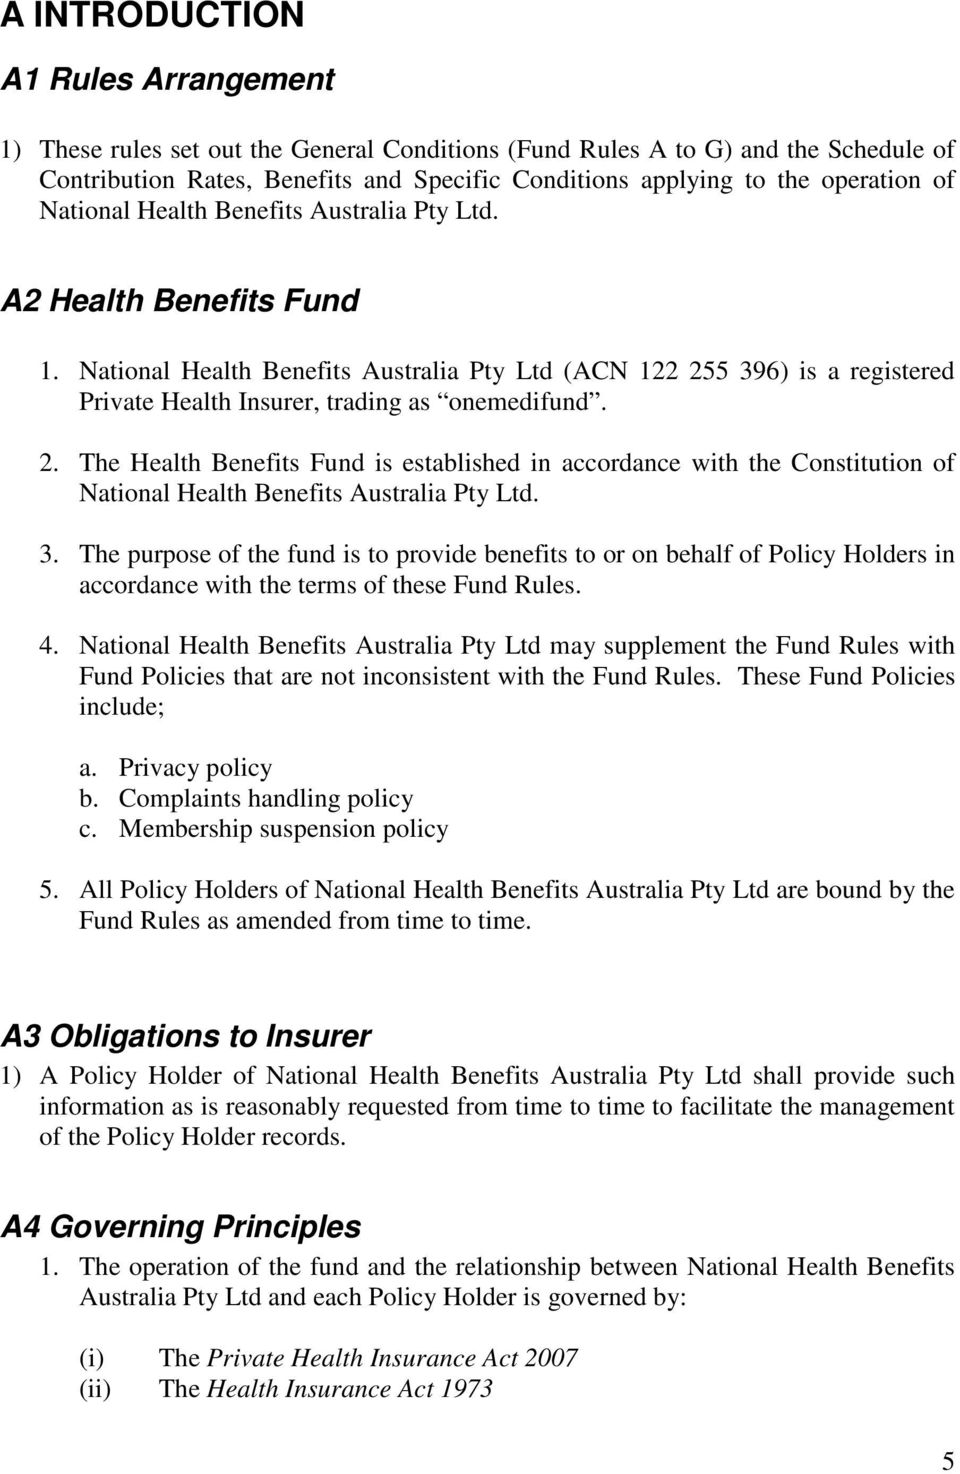 National Health Benefits Australia Pty Ltd (ACN 122 255 396) is a registered Private Health Insurer, trading as onemedifund. 2. The Health Benefits Fund is established in accordance with the Constitution of National Health Benefits Australia Pty Ltd.